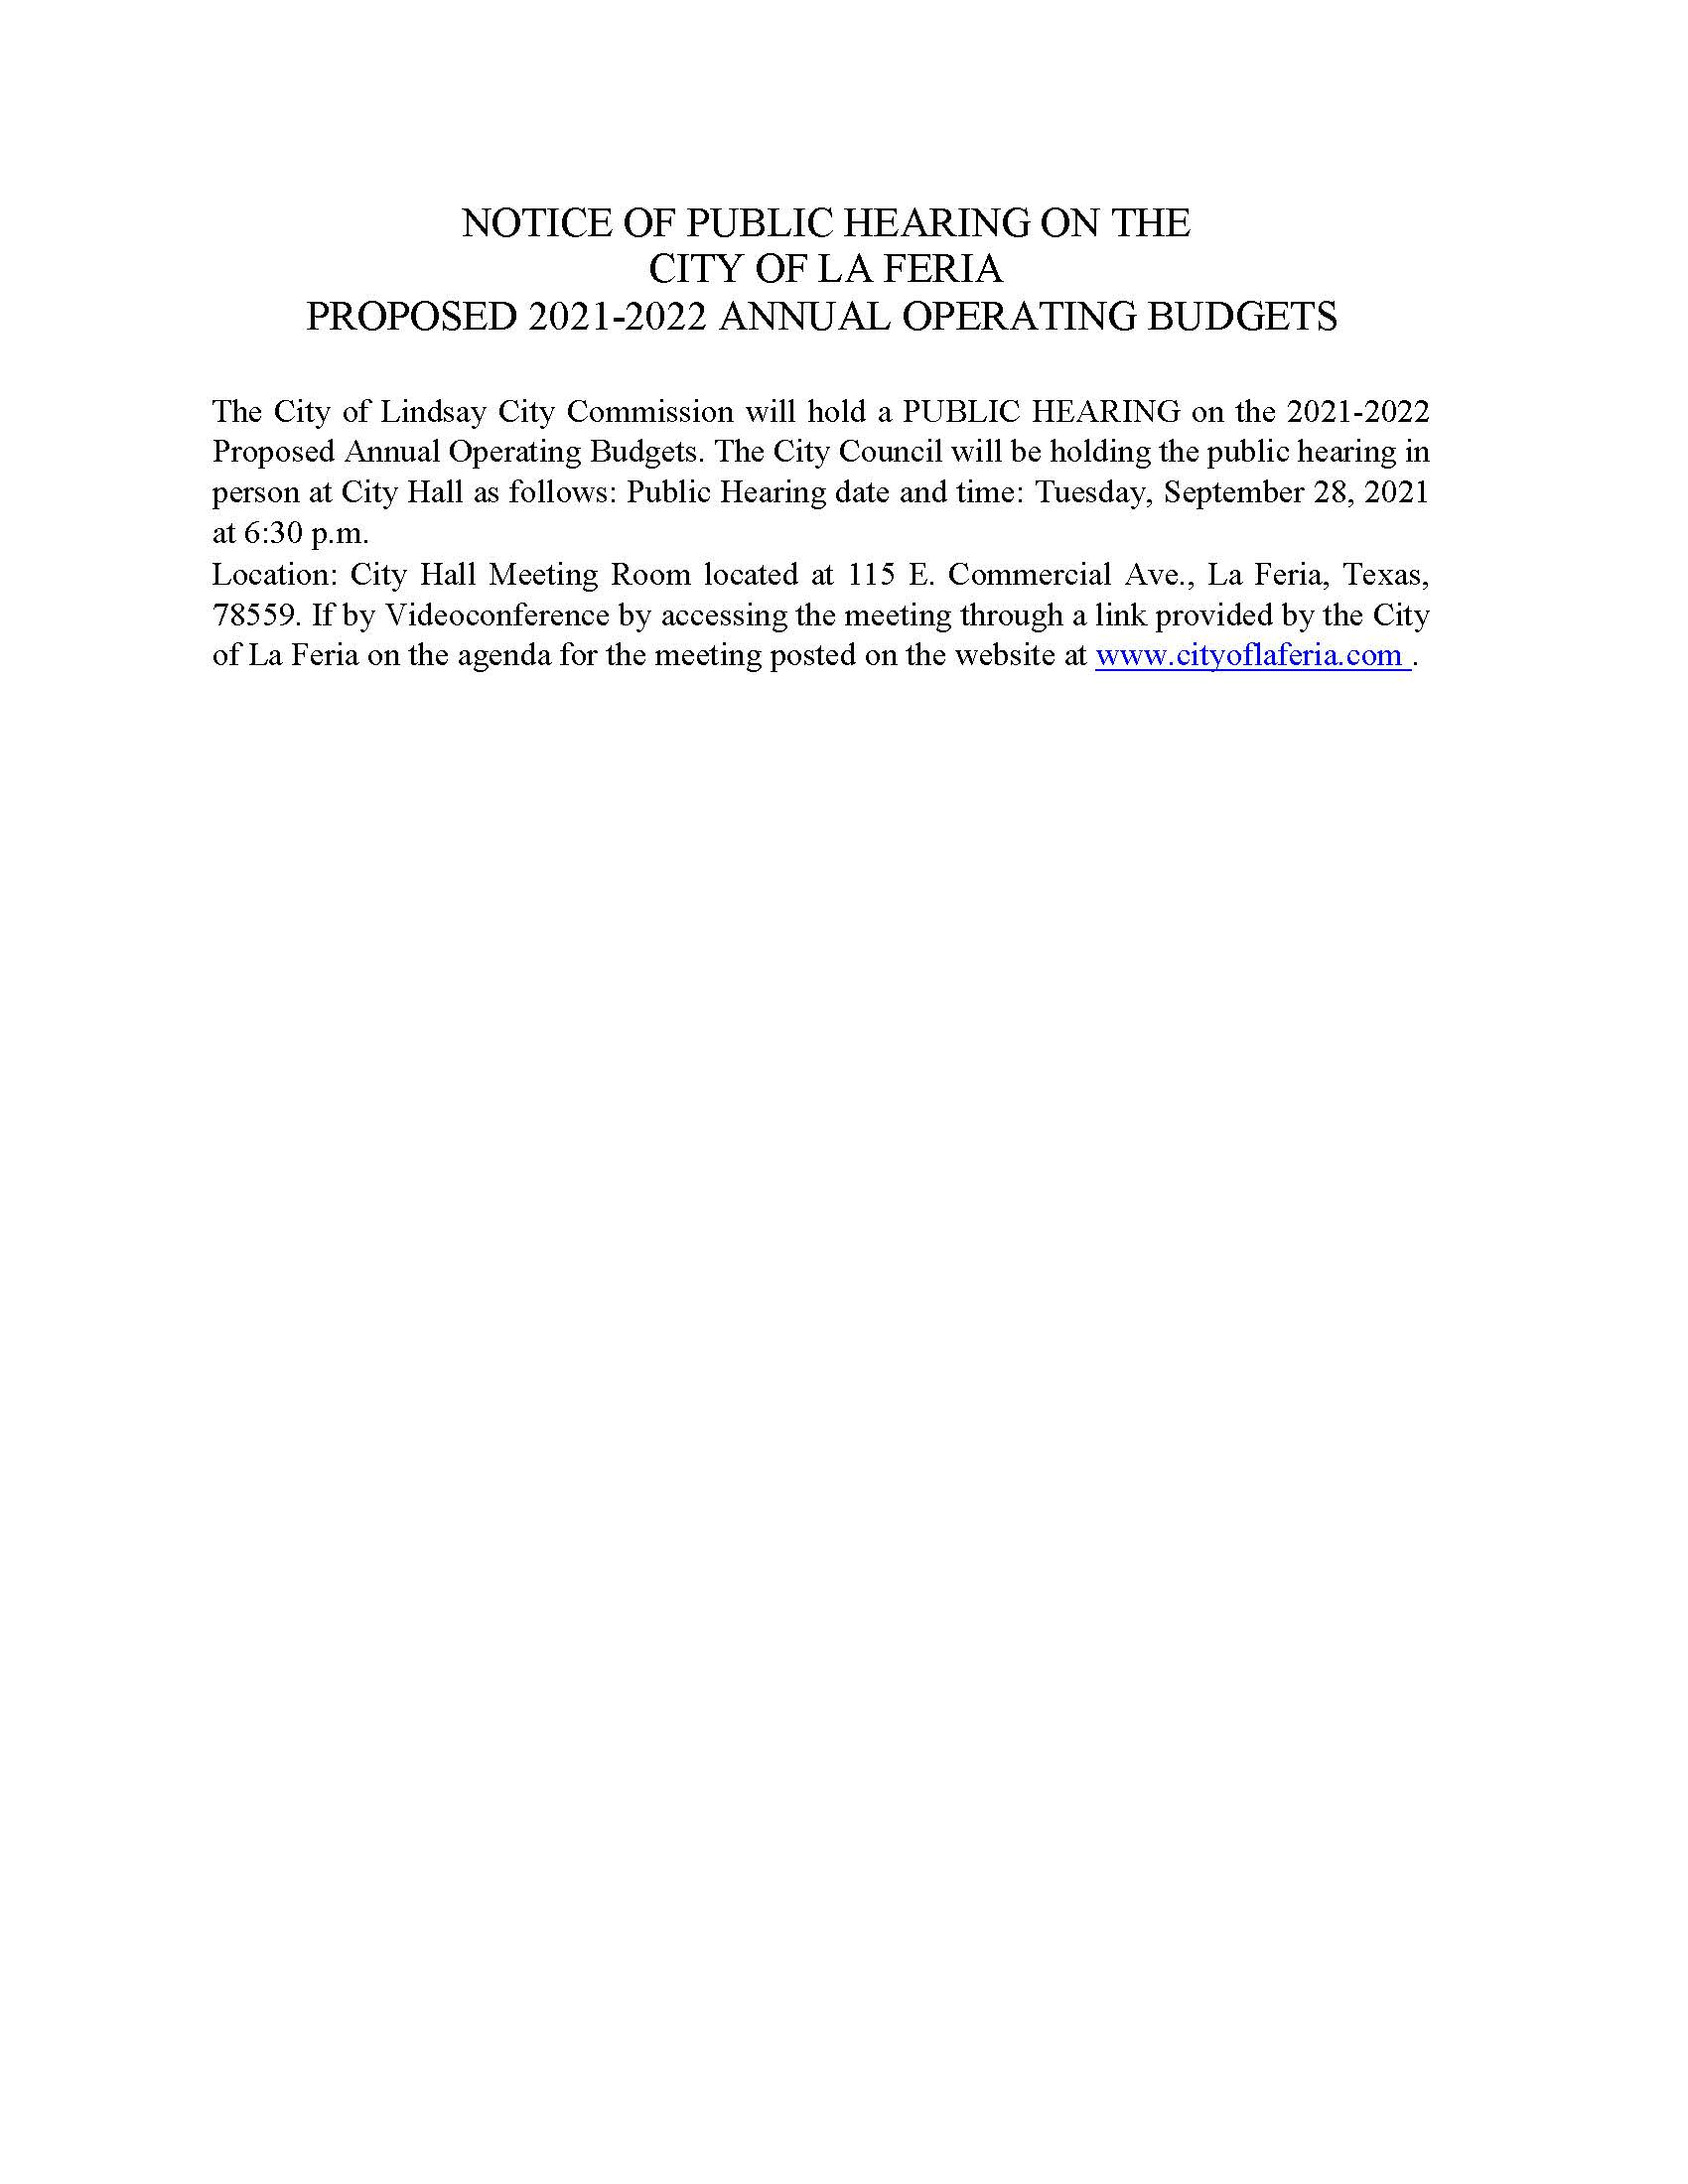 2021-2022-Notice-of-Public-Hearing-for-Proposed-Budget